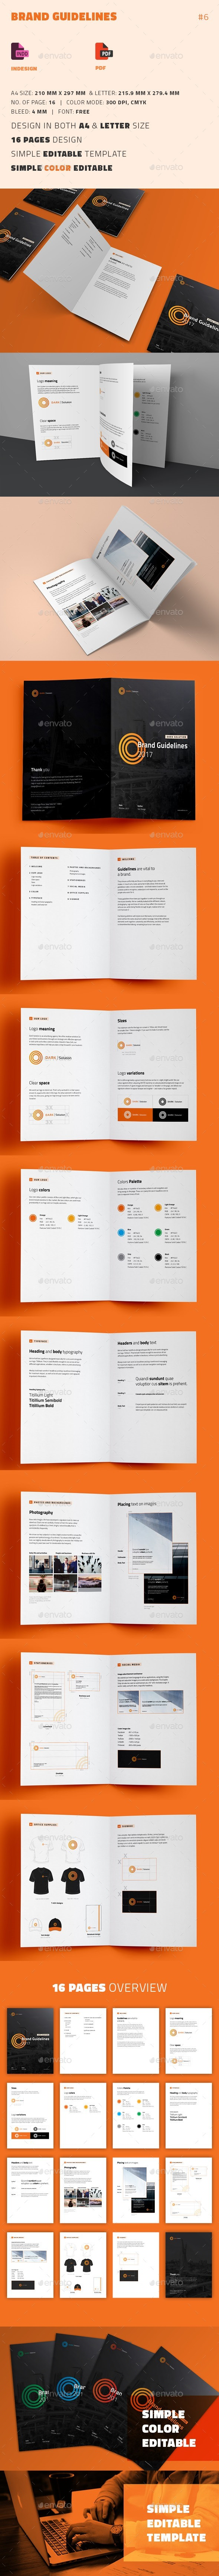 GraphicRiver Brand Guidelines 20819151